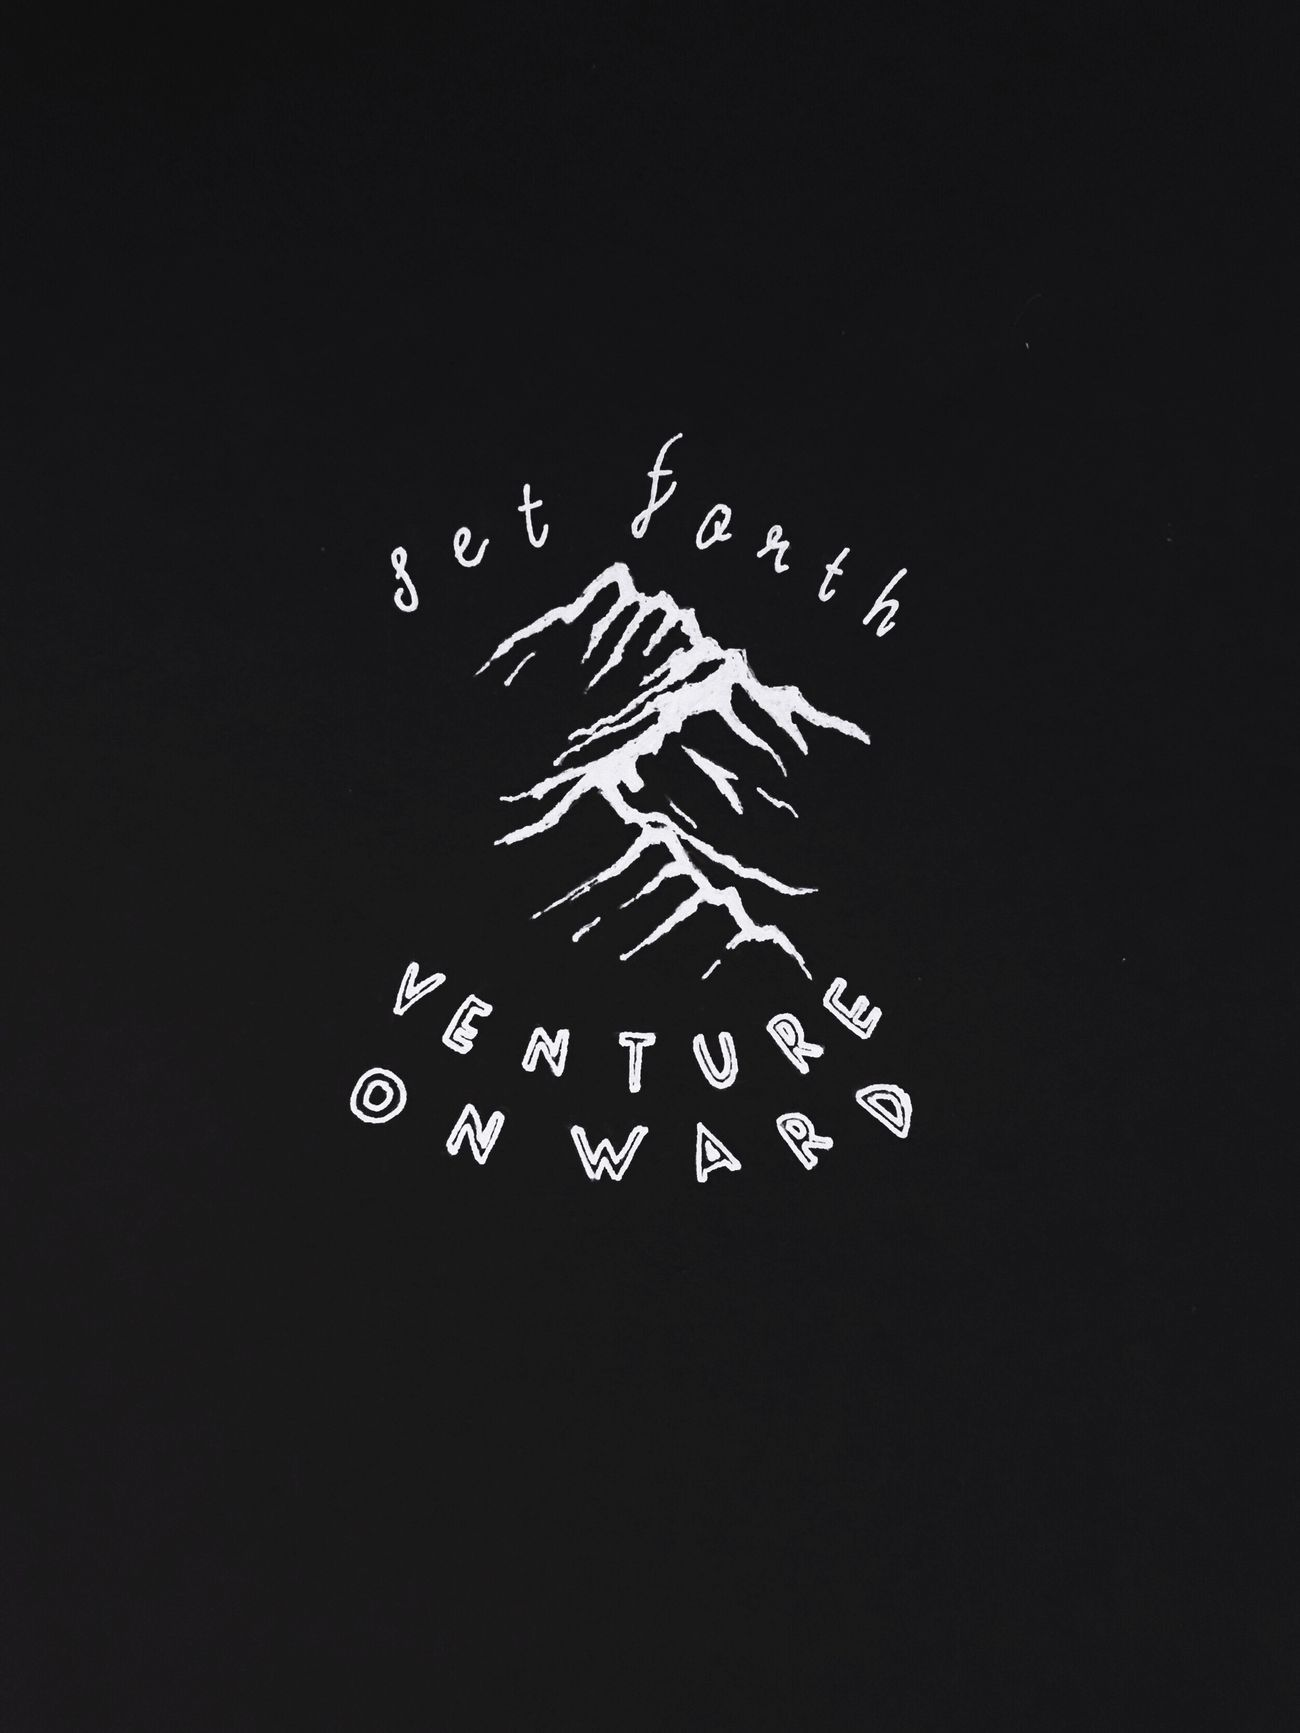 Set Forth, Venture Onward. Hand-drawn logo by @minijukes Branding Hand Drawn Logo Adventure Venture Mountain Sketch Doodle Artline Calligraphy Typography First Eyeem Photo